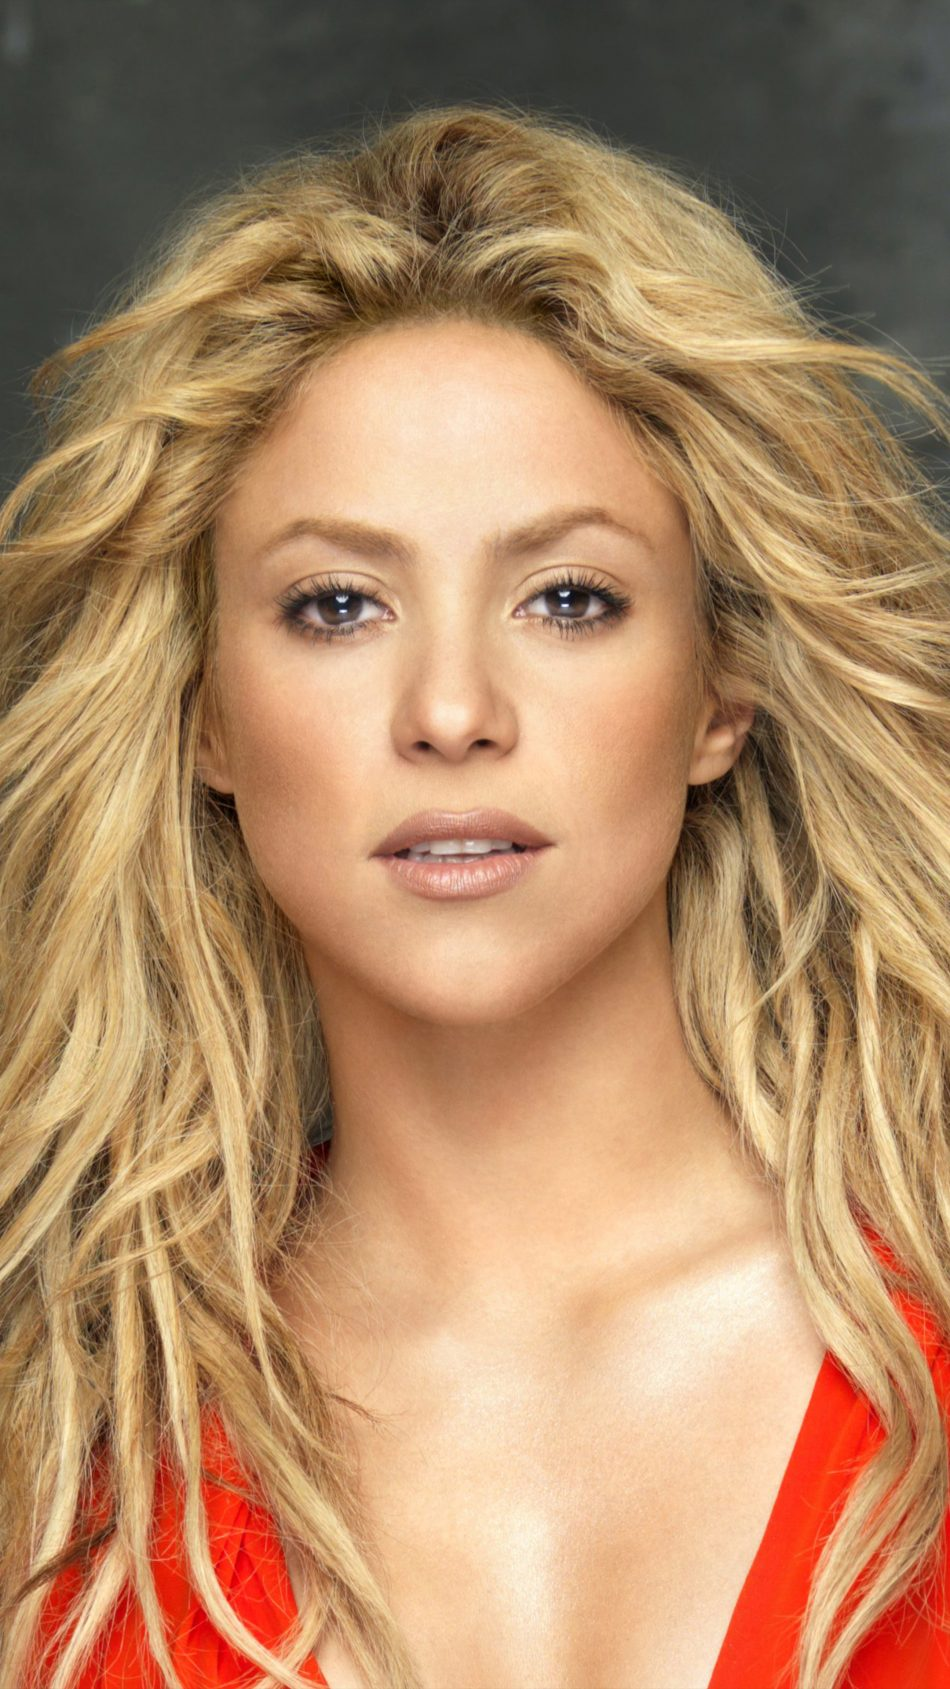 32 Shakira 2018 Wallpapers On Wallpapersafari